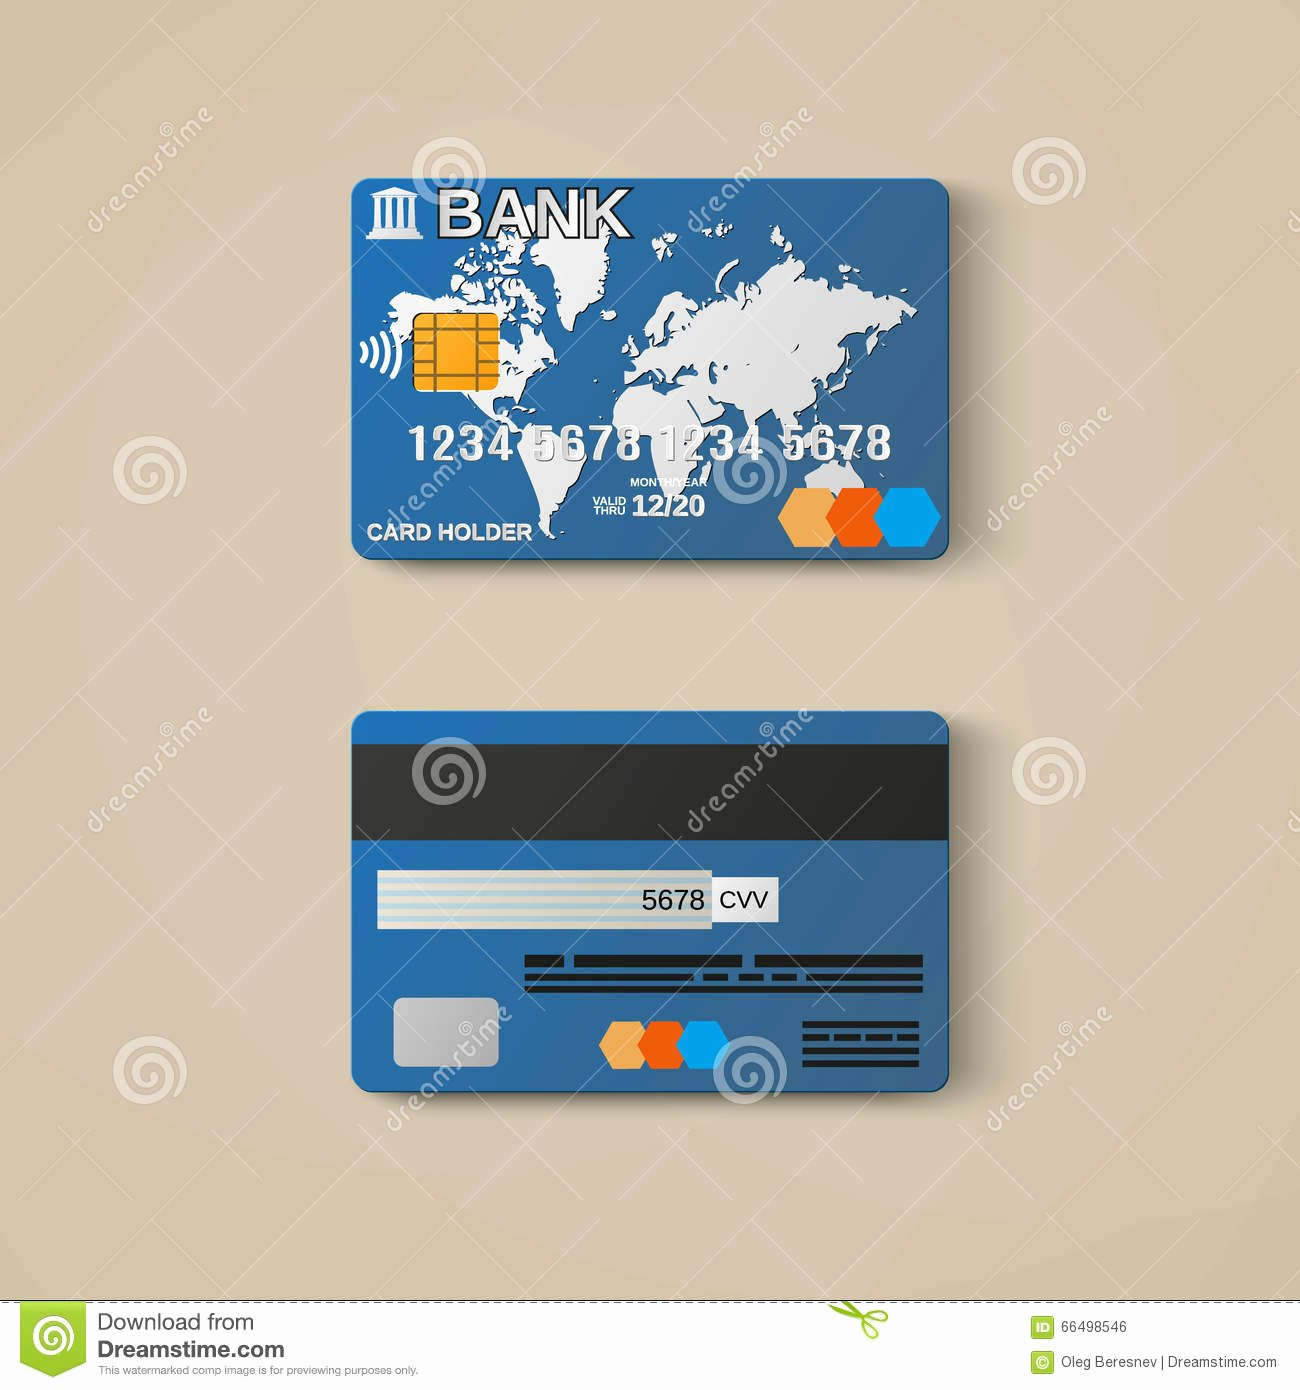 Credit Card Design Template Awesome Bank Card Credit Card Design Template Stock Vector